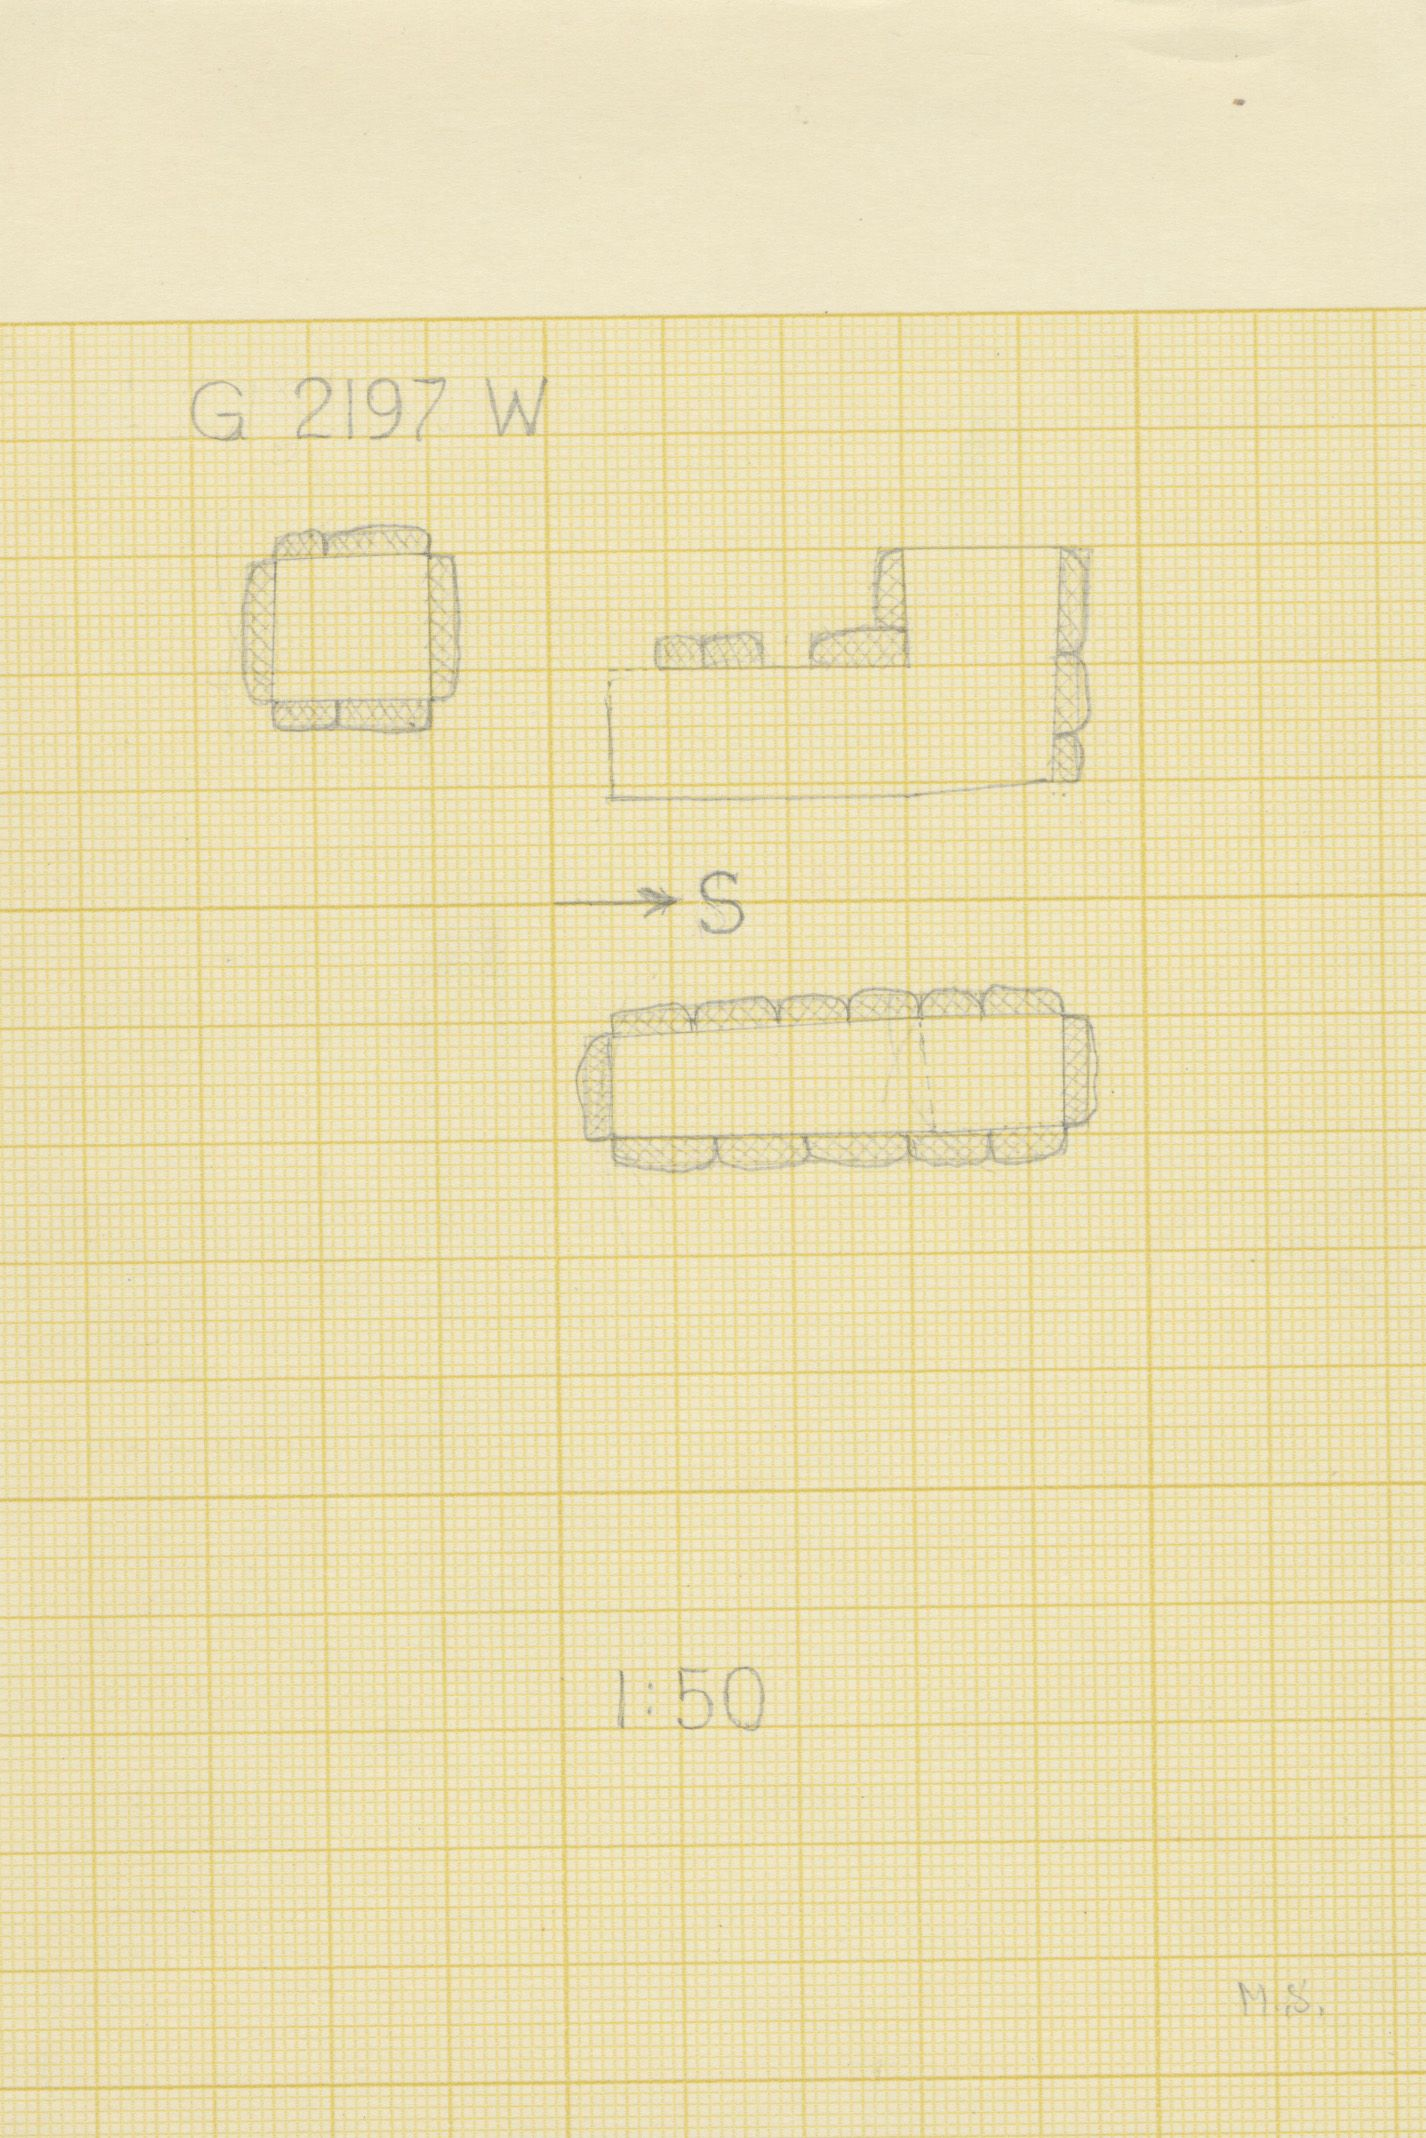 Maps and plans: G 2197, Shaft W